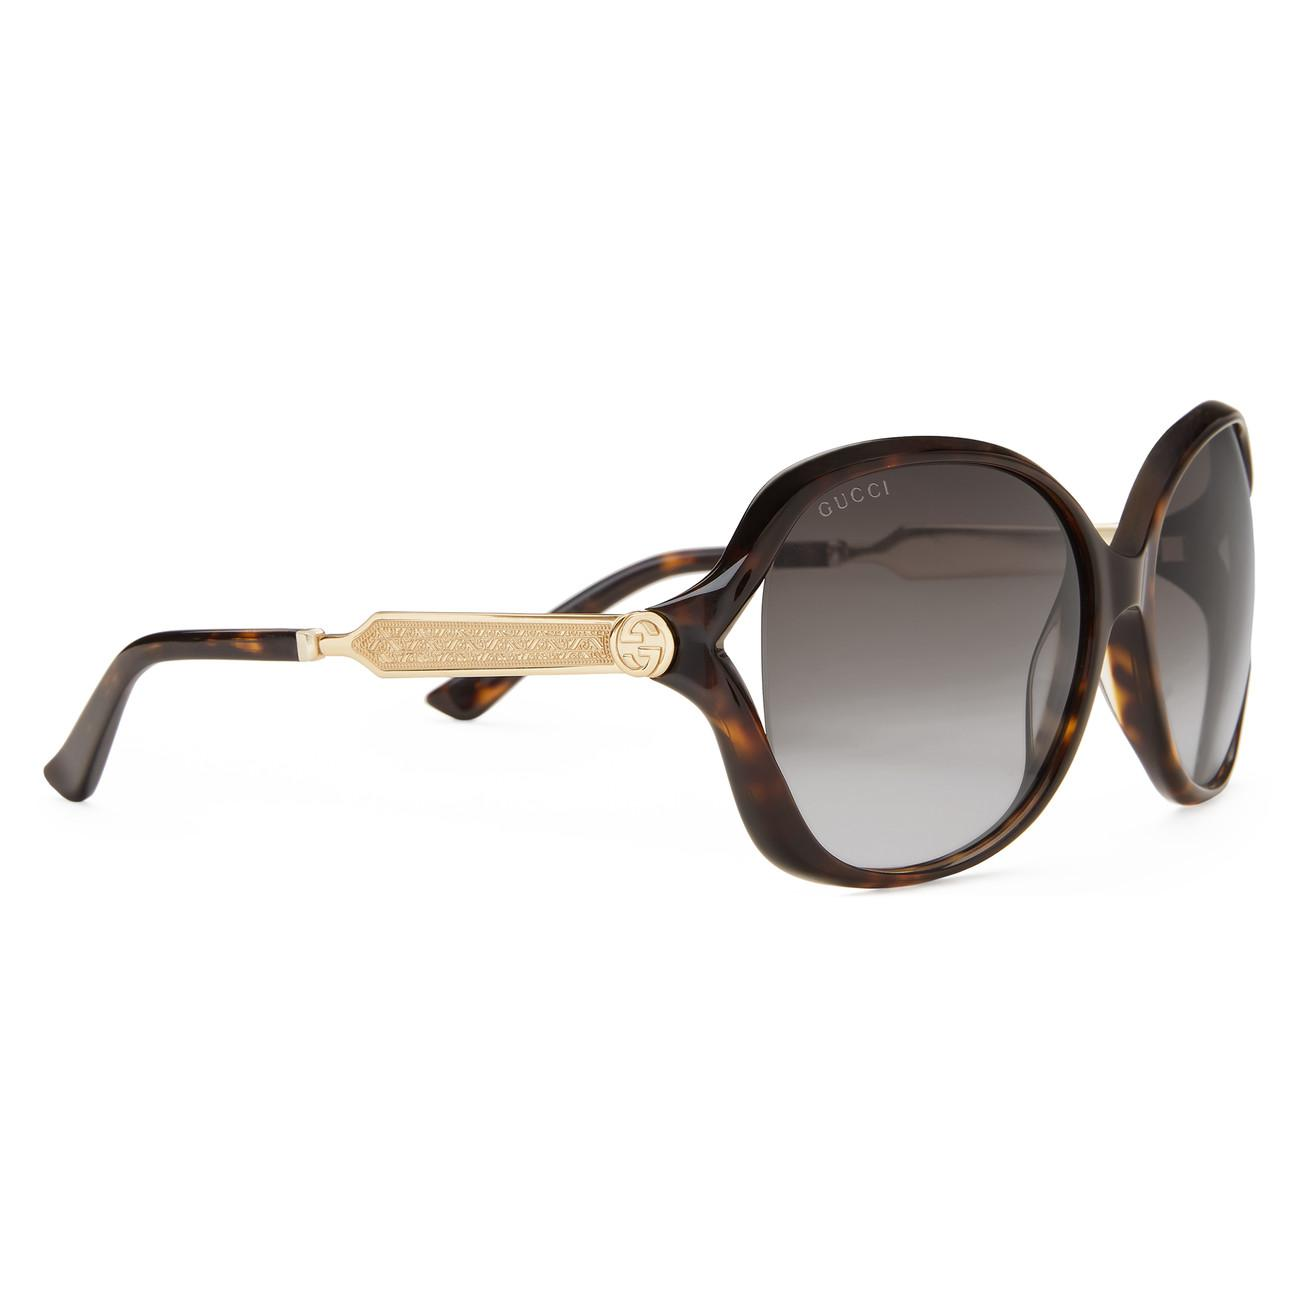 829eac98293 Gucci - Brown Oversize Round-frame Acetate And Metal Sunglasses - Lyst.  View fullscreen